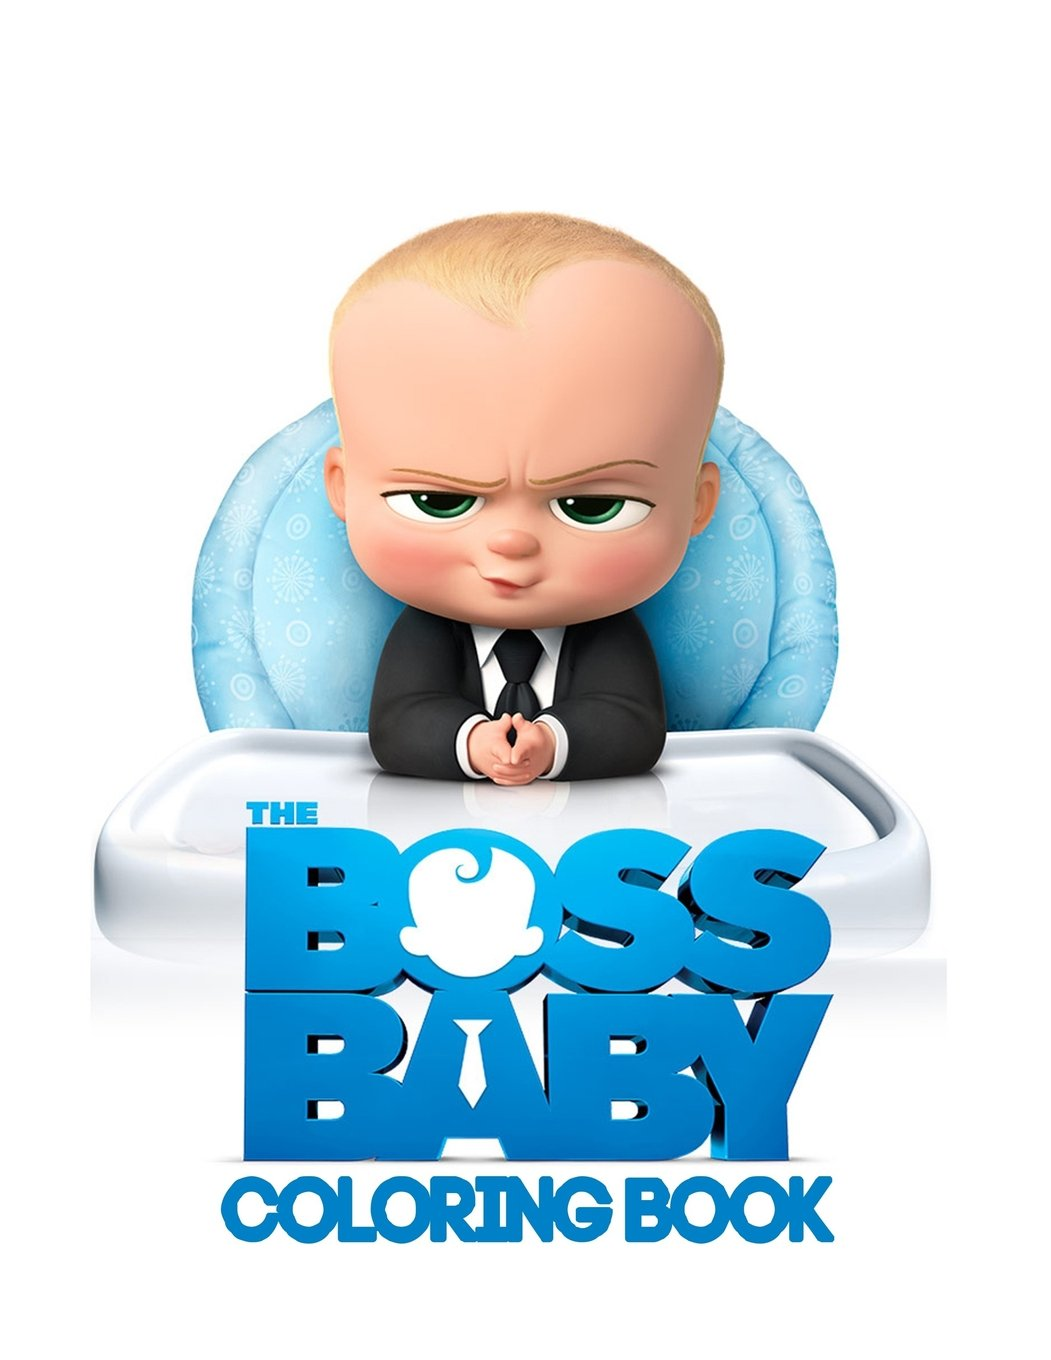 Boss Baby Coloring Book: Coloring Book for Kids and Adults, This Amazing Coloring Book Will Make Your Kids Happier and Give Them Joy (Best ... Books for Adults and Kids 2-4 4-8 8-12+) pdf epub